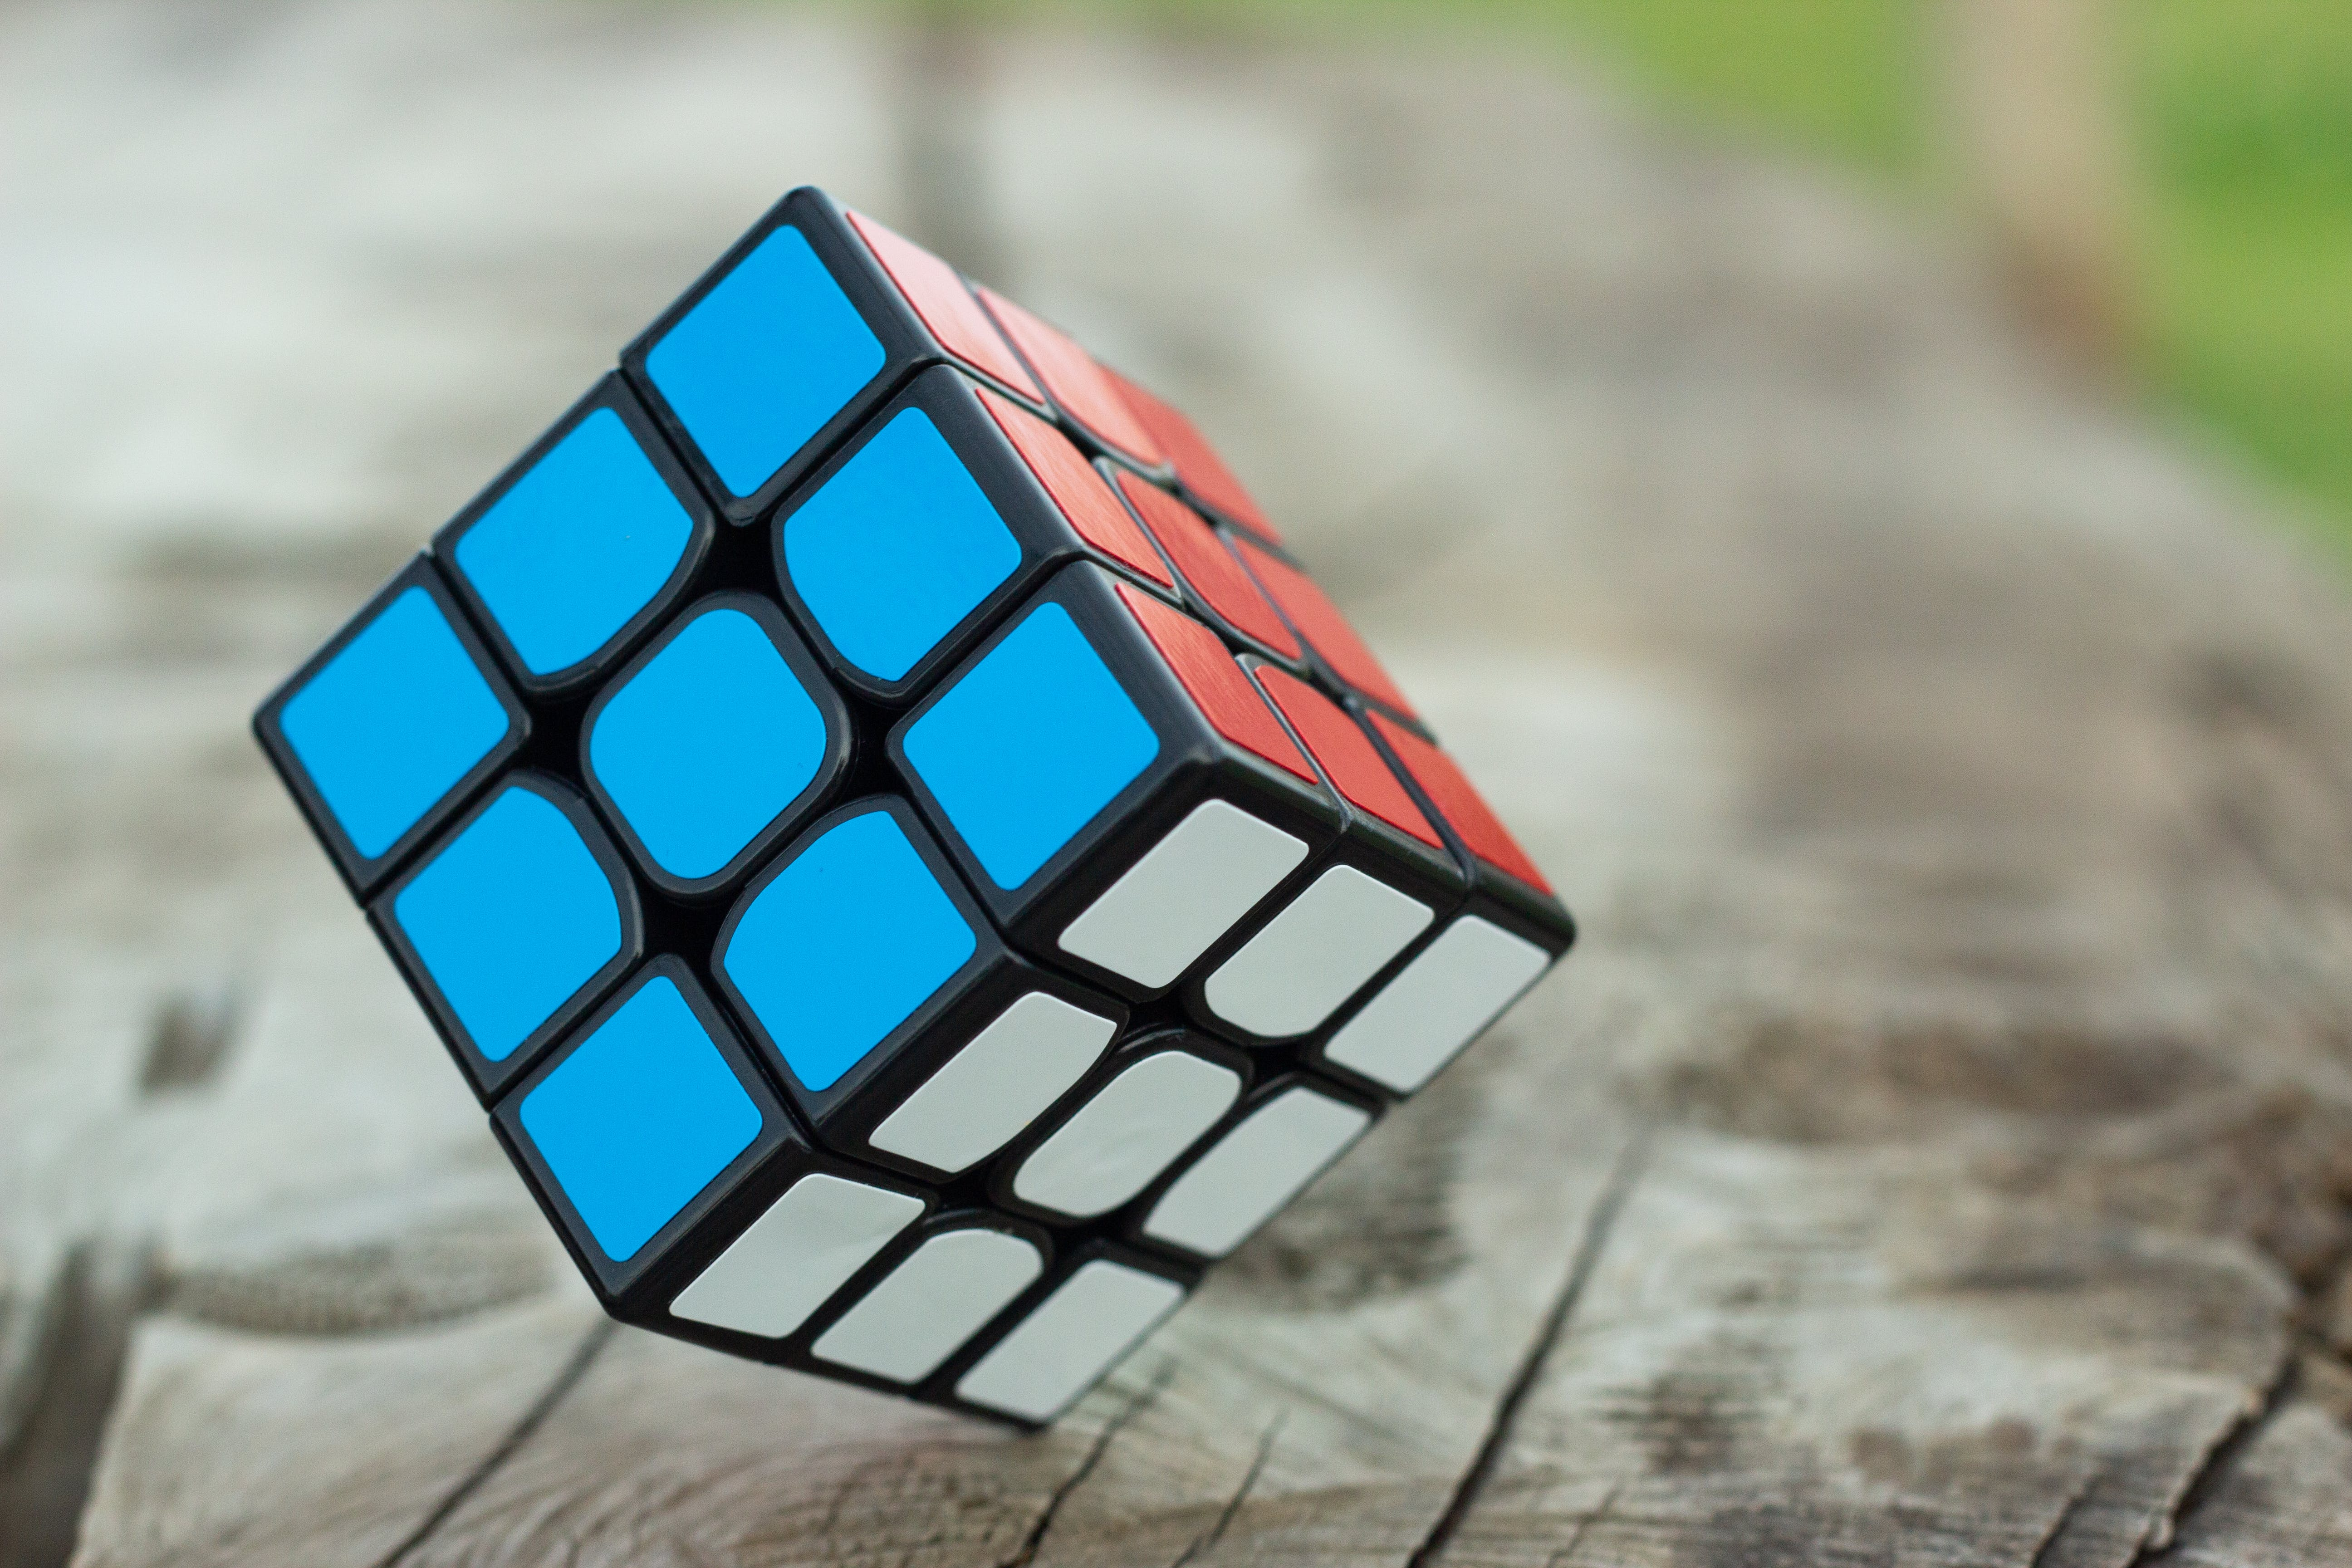 3 by 3 Rubik's Cube Selective Focus Photography